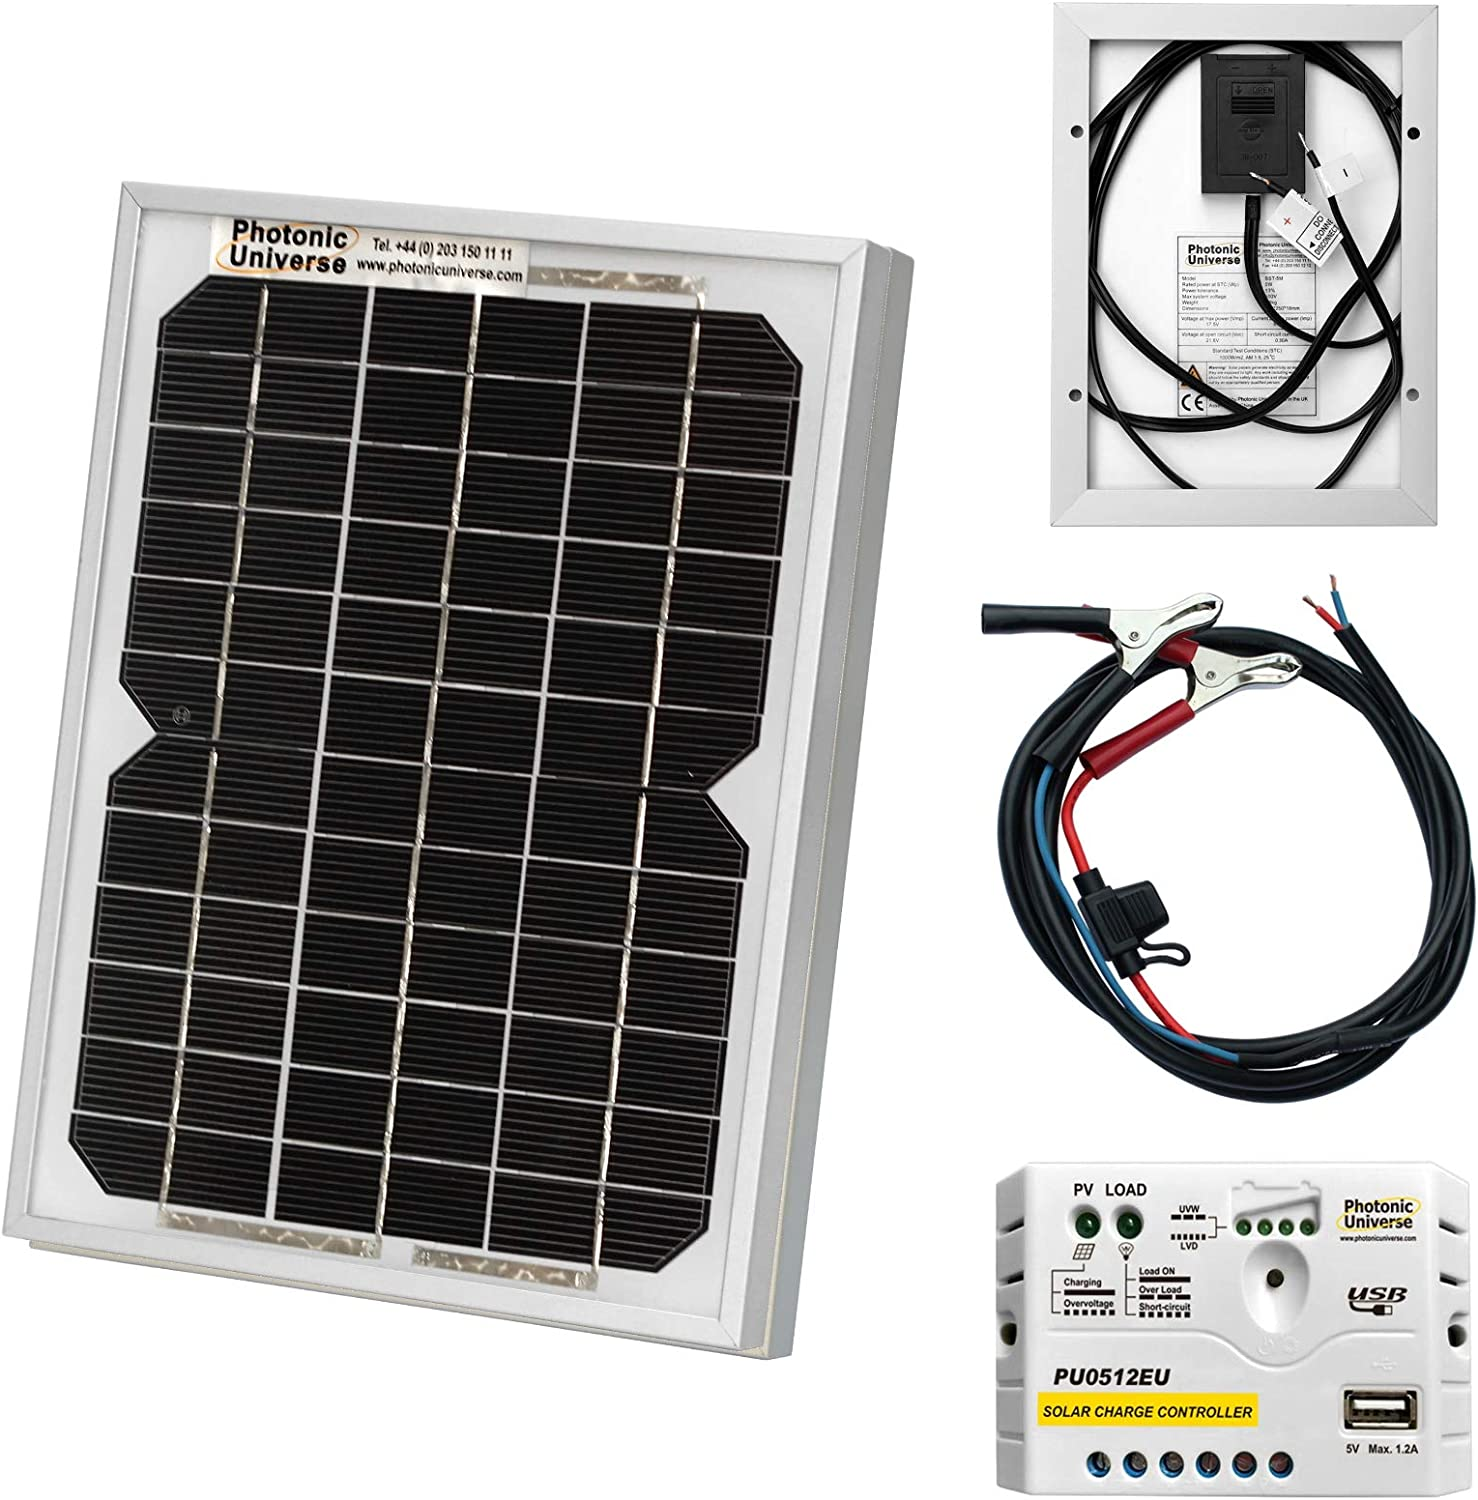 12 volt solar battery charger kit